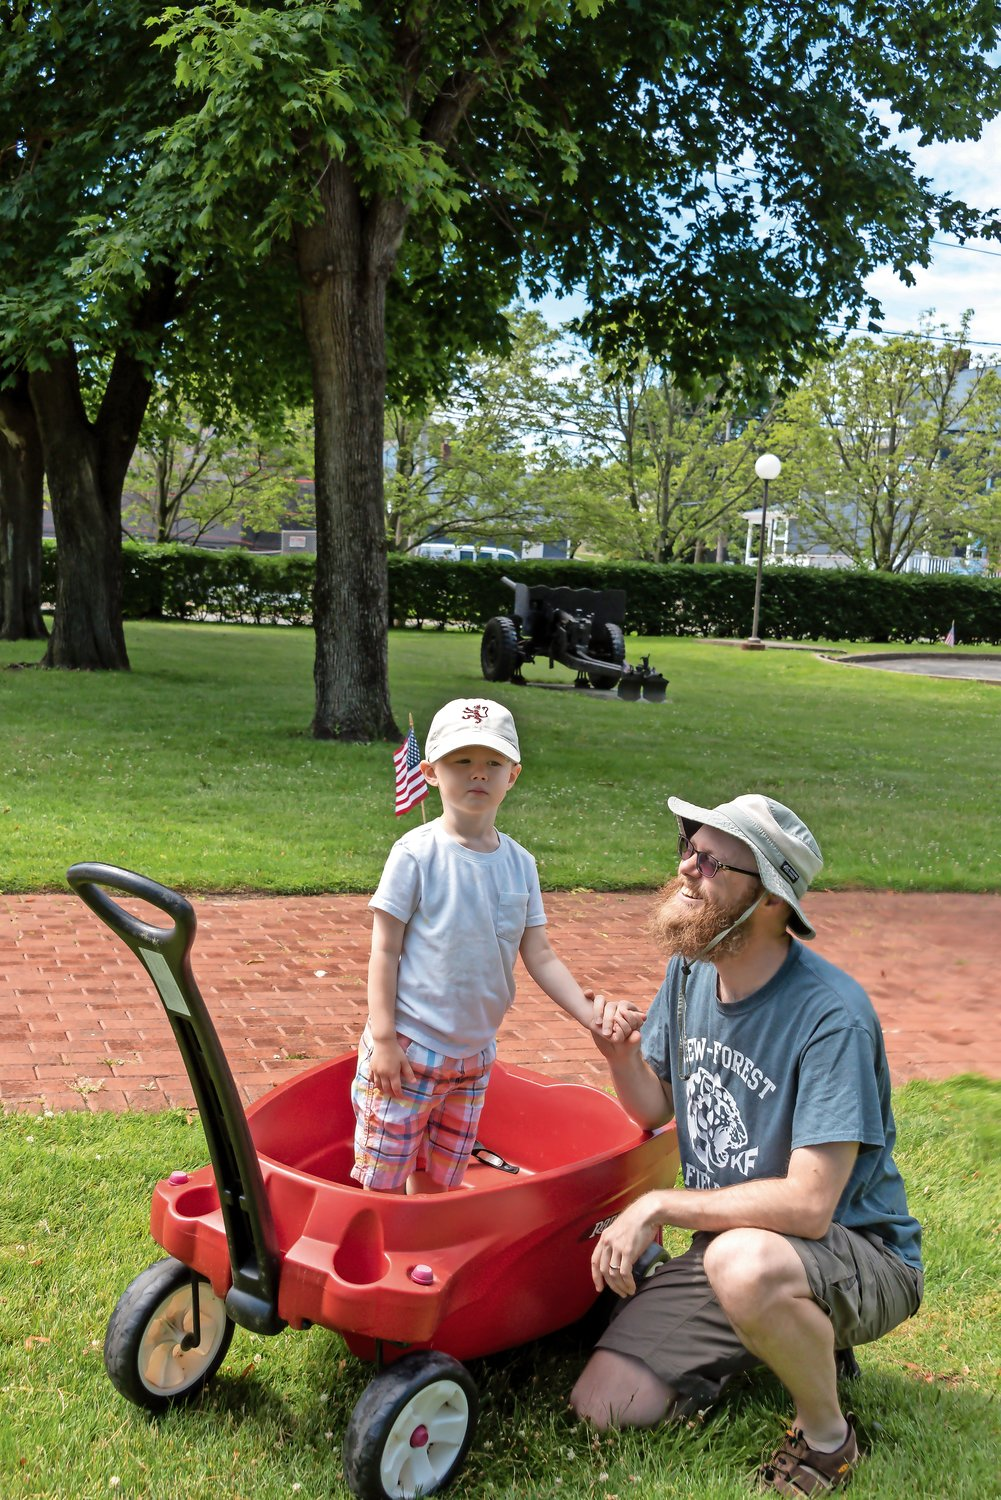 Colin Sipley, 3 ½, stood on the seat of his wagon to get a better look at the action with his father, Tristan Sipley.